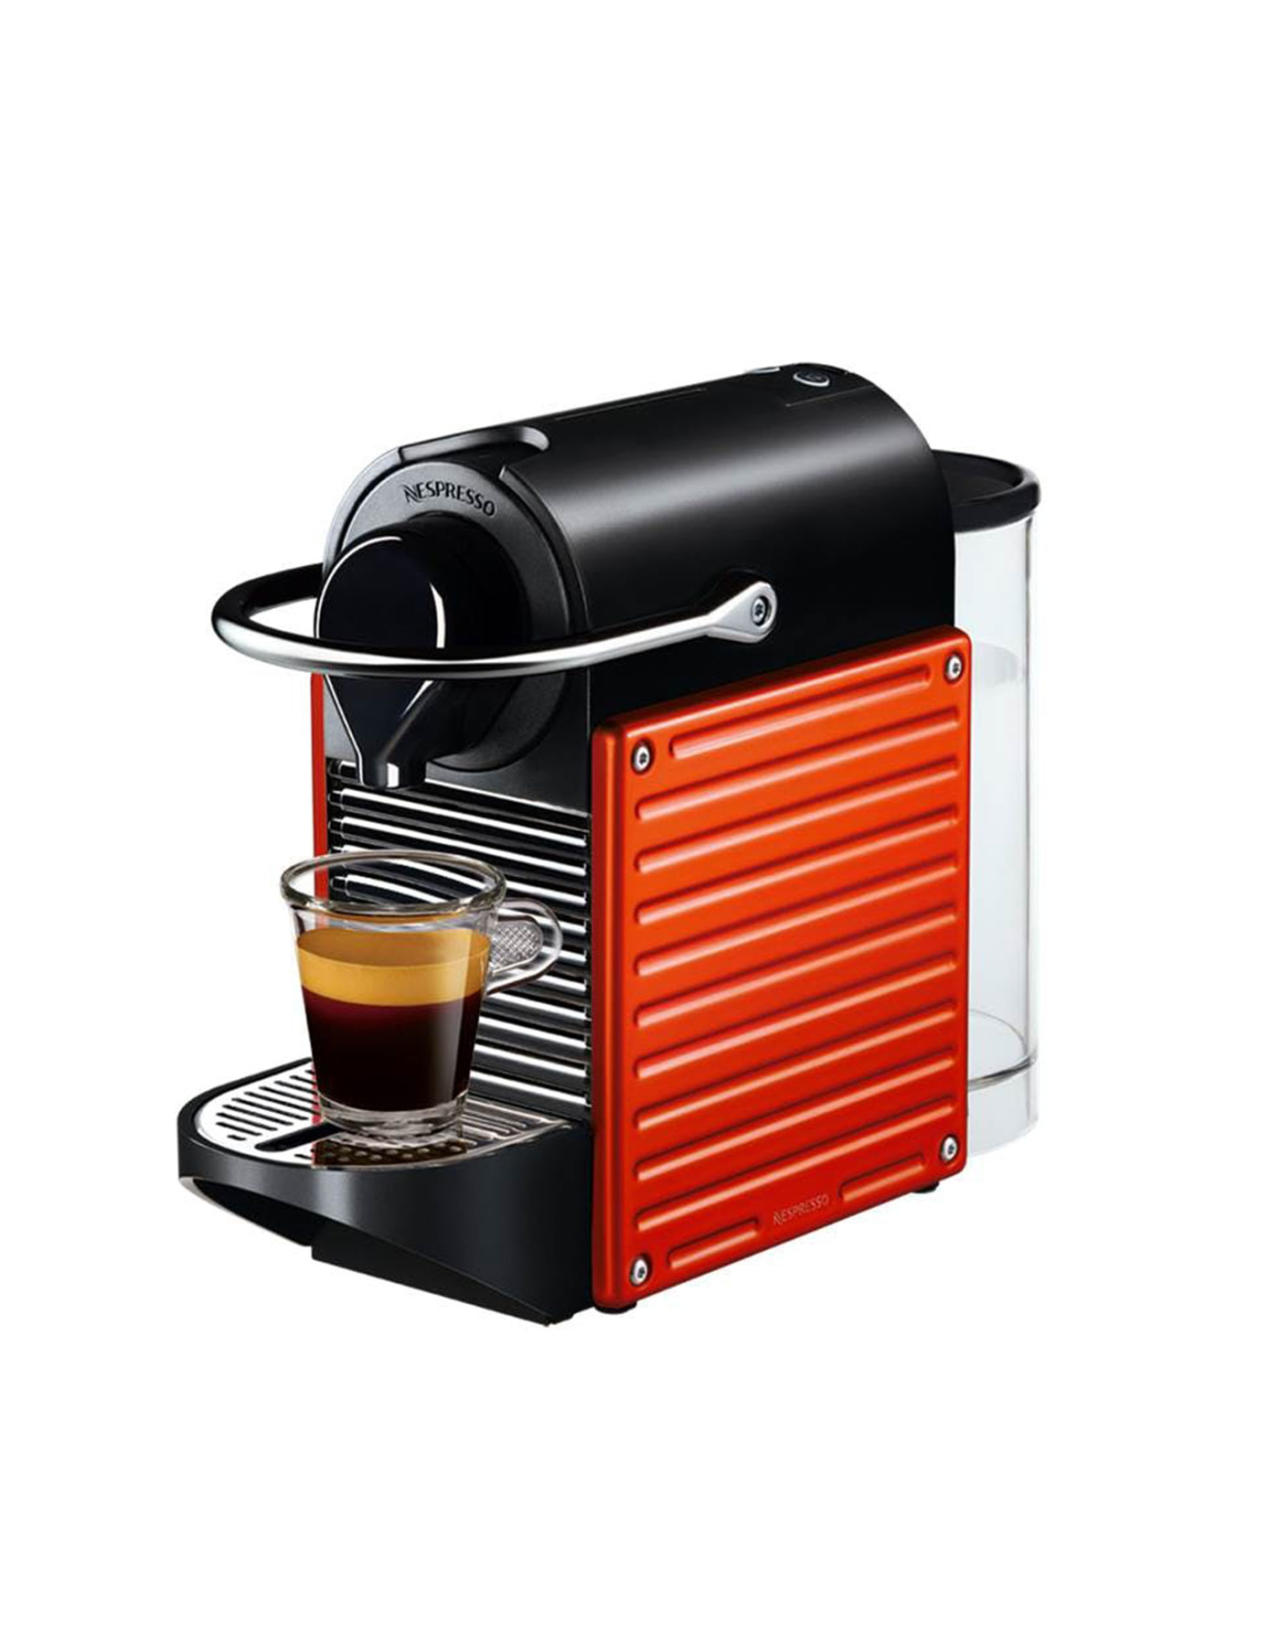 justbobbi_Diary_Kitchen_Nespresso